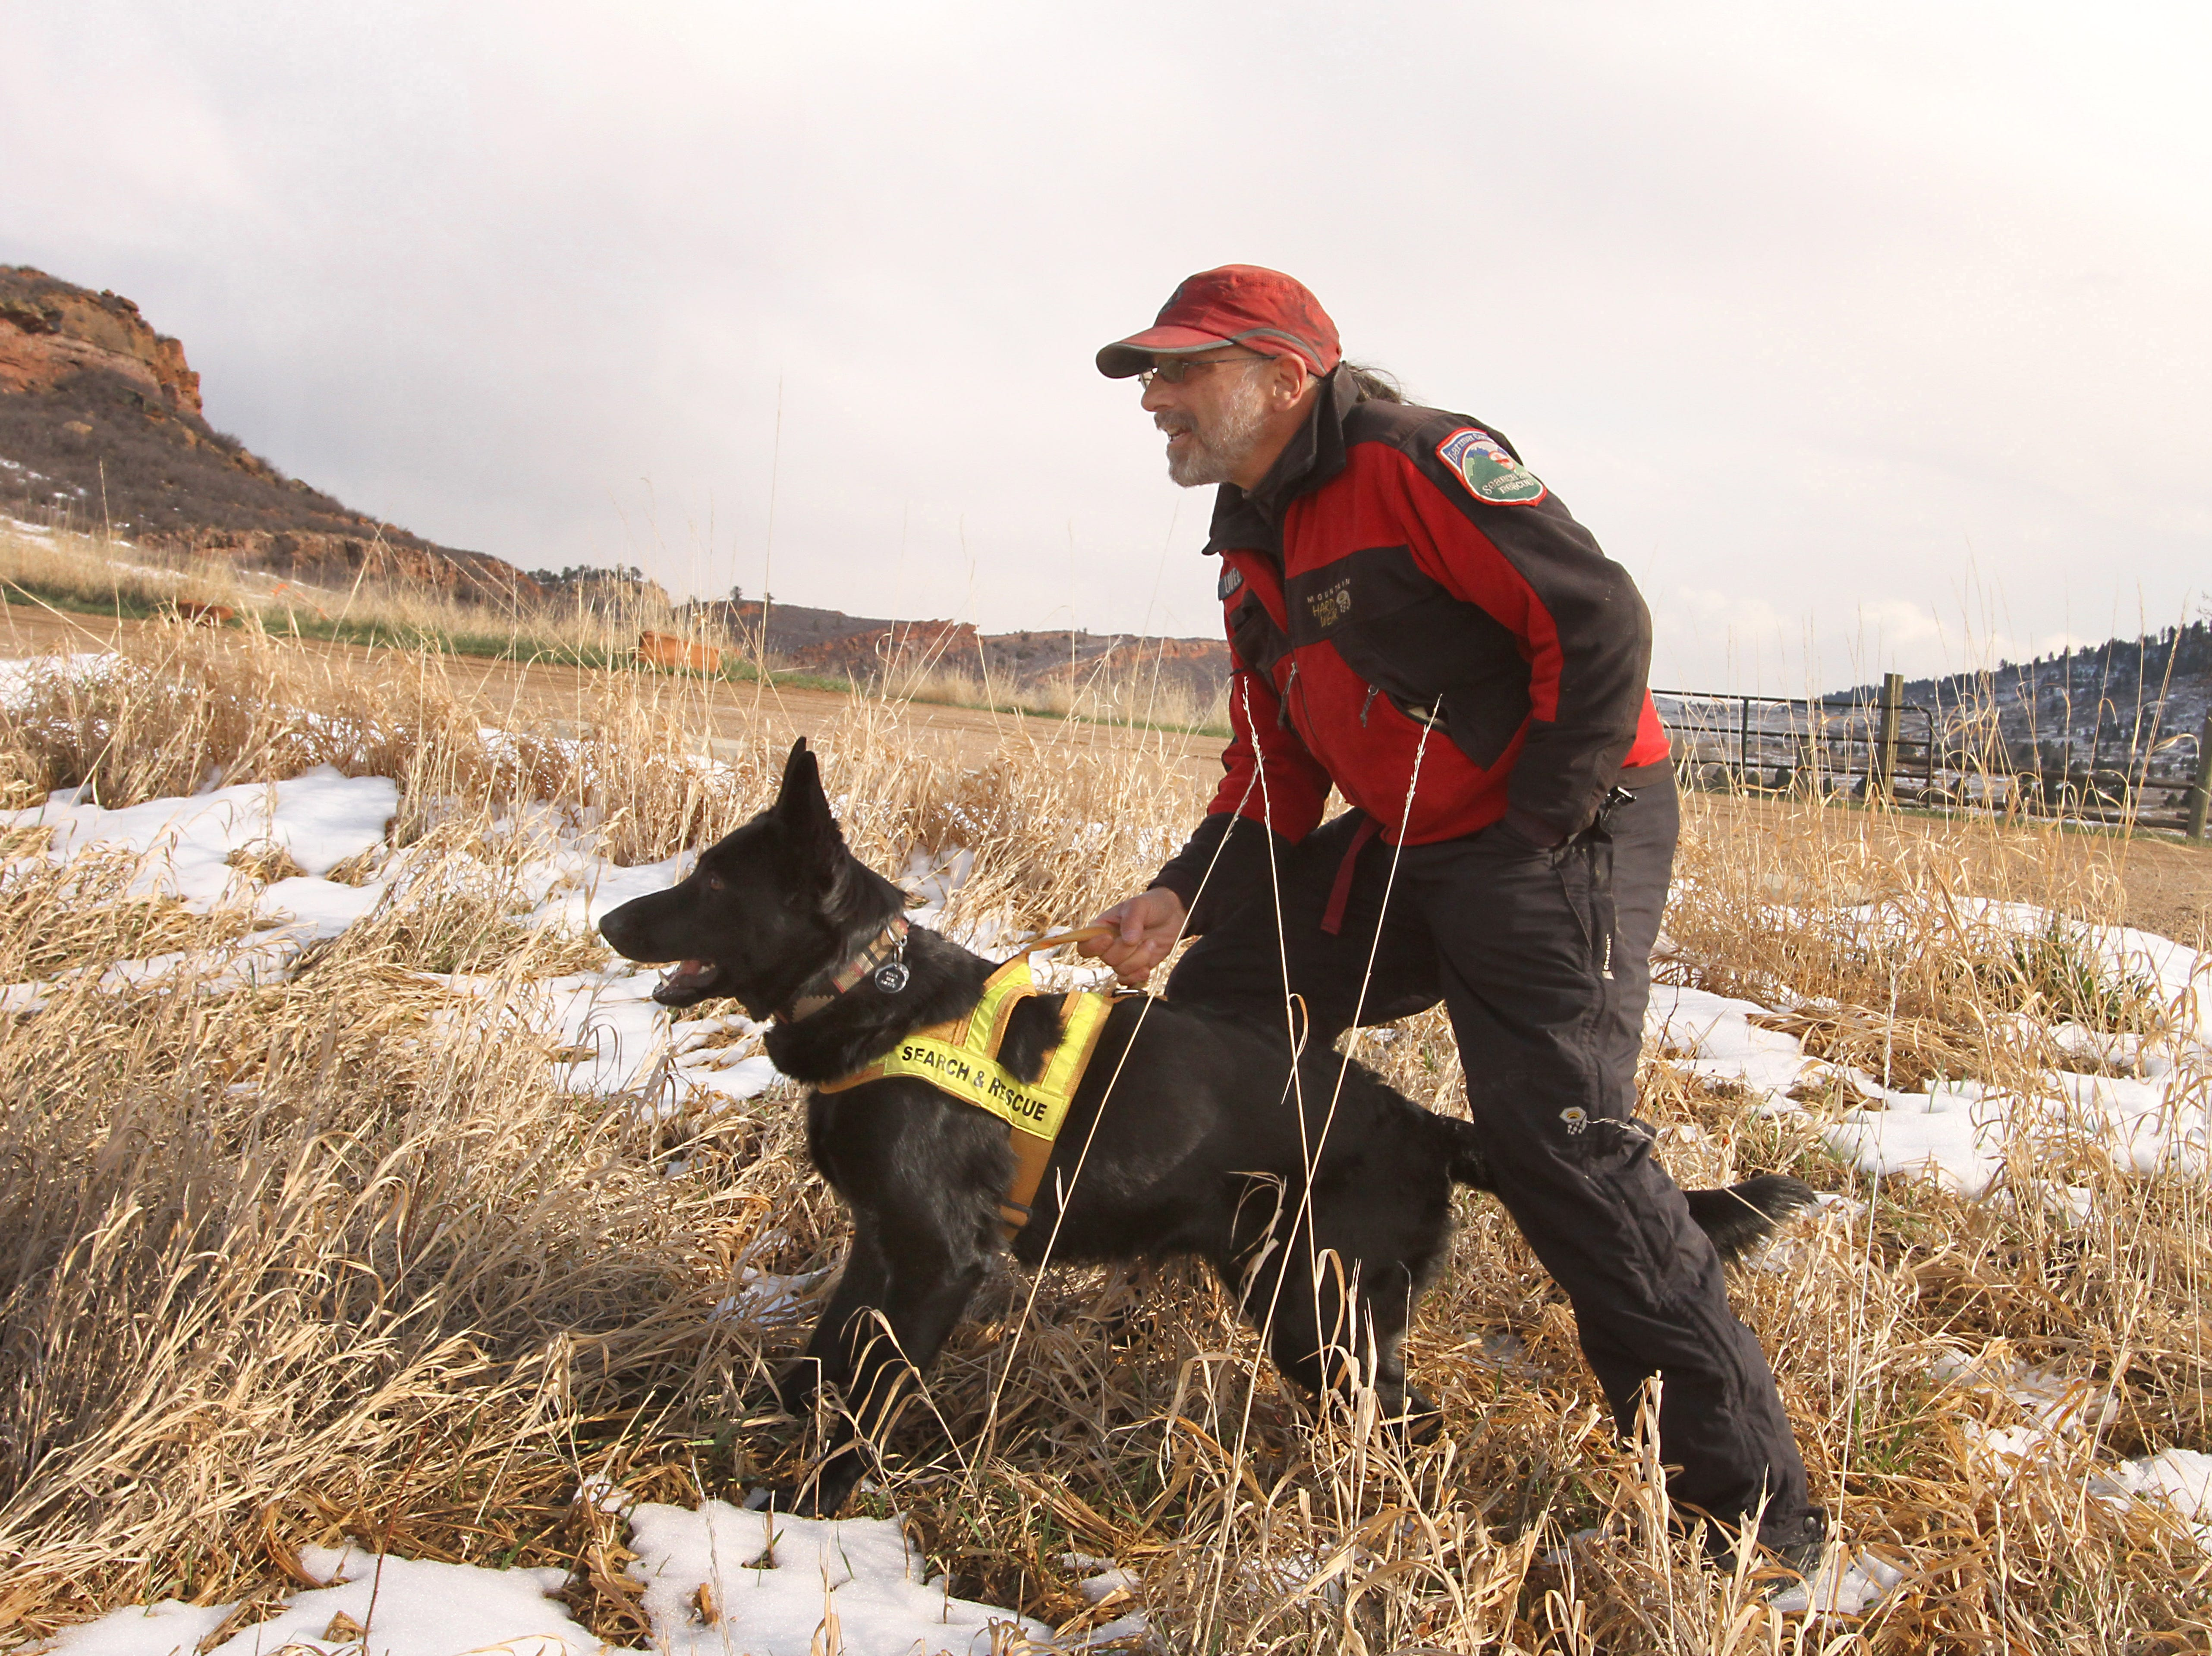 Larimer County Search and Rescue team member, Jake Udel, prepares his dog, Java, for a runaway drill during a training event held at Lory State Park on Saturday, April 13, 2019.